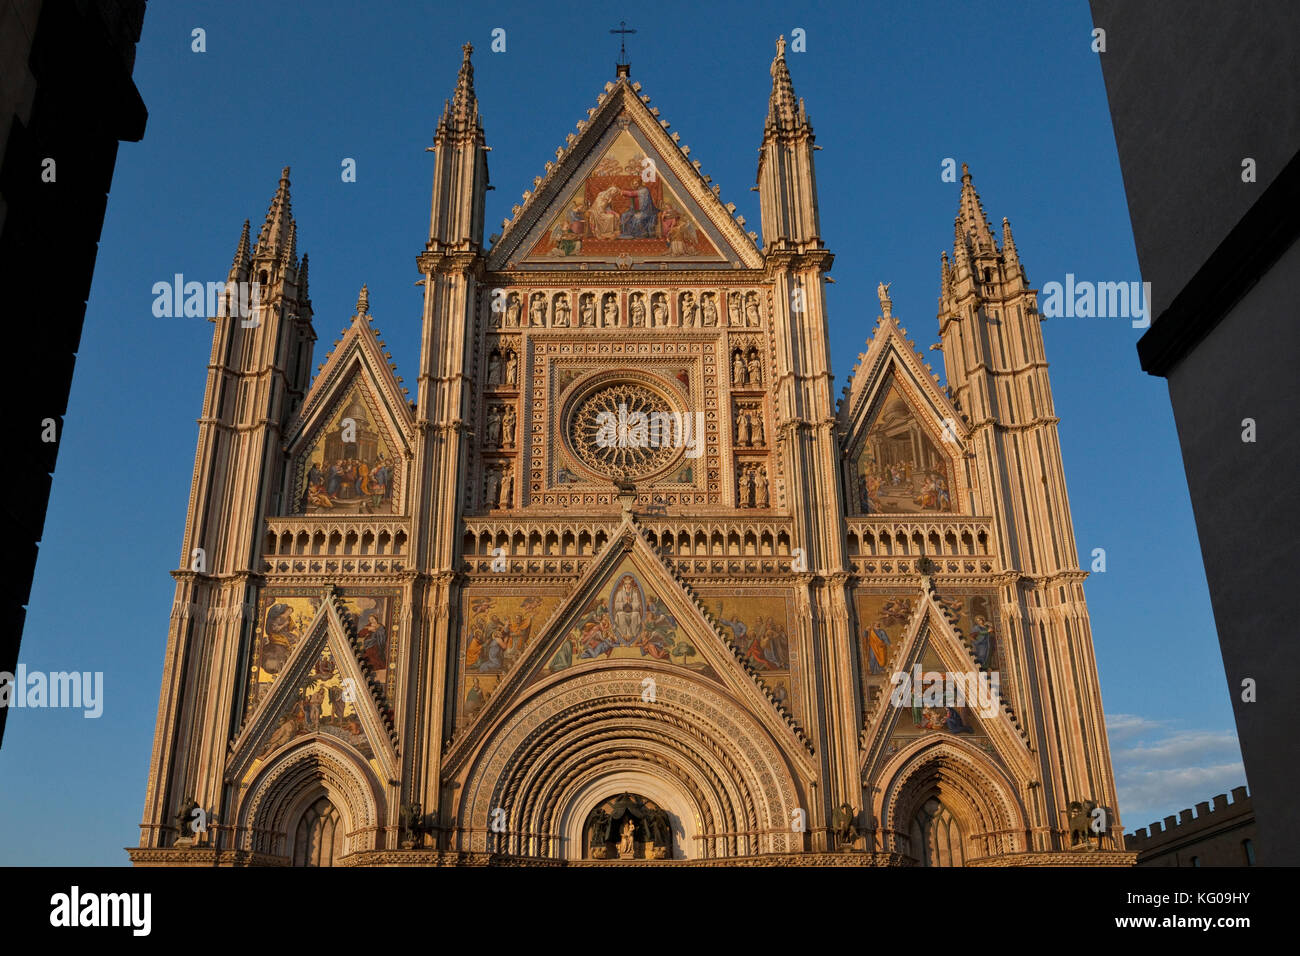 A view of the Duomo at sunset in Umbrian town of Orvieto, Italy. - Stock Image